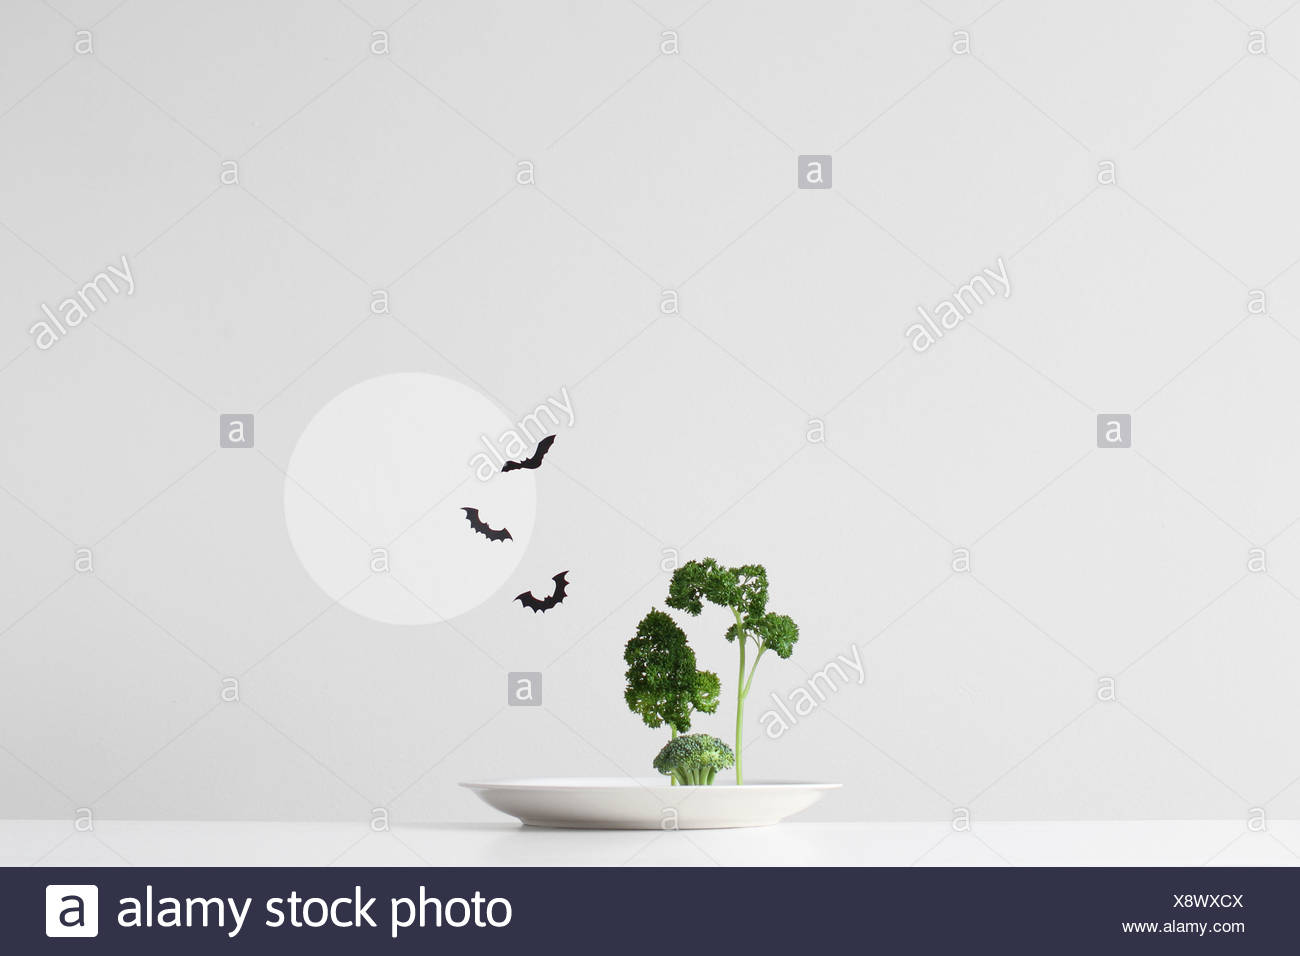 Conceptual spooky forest made up of green herbs and vegetables on a plate - Stock Image